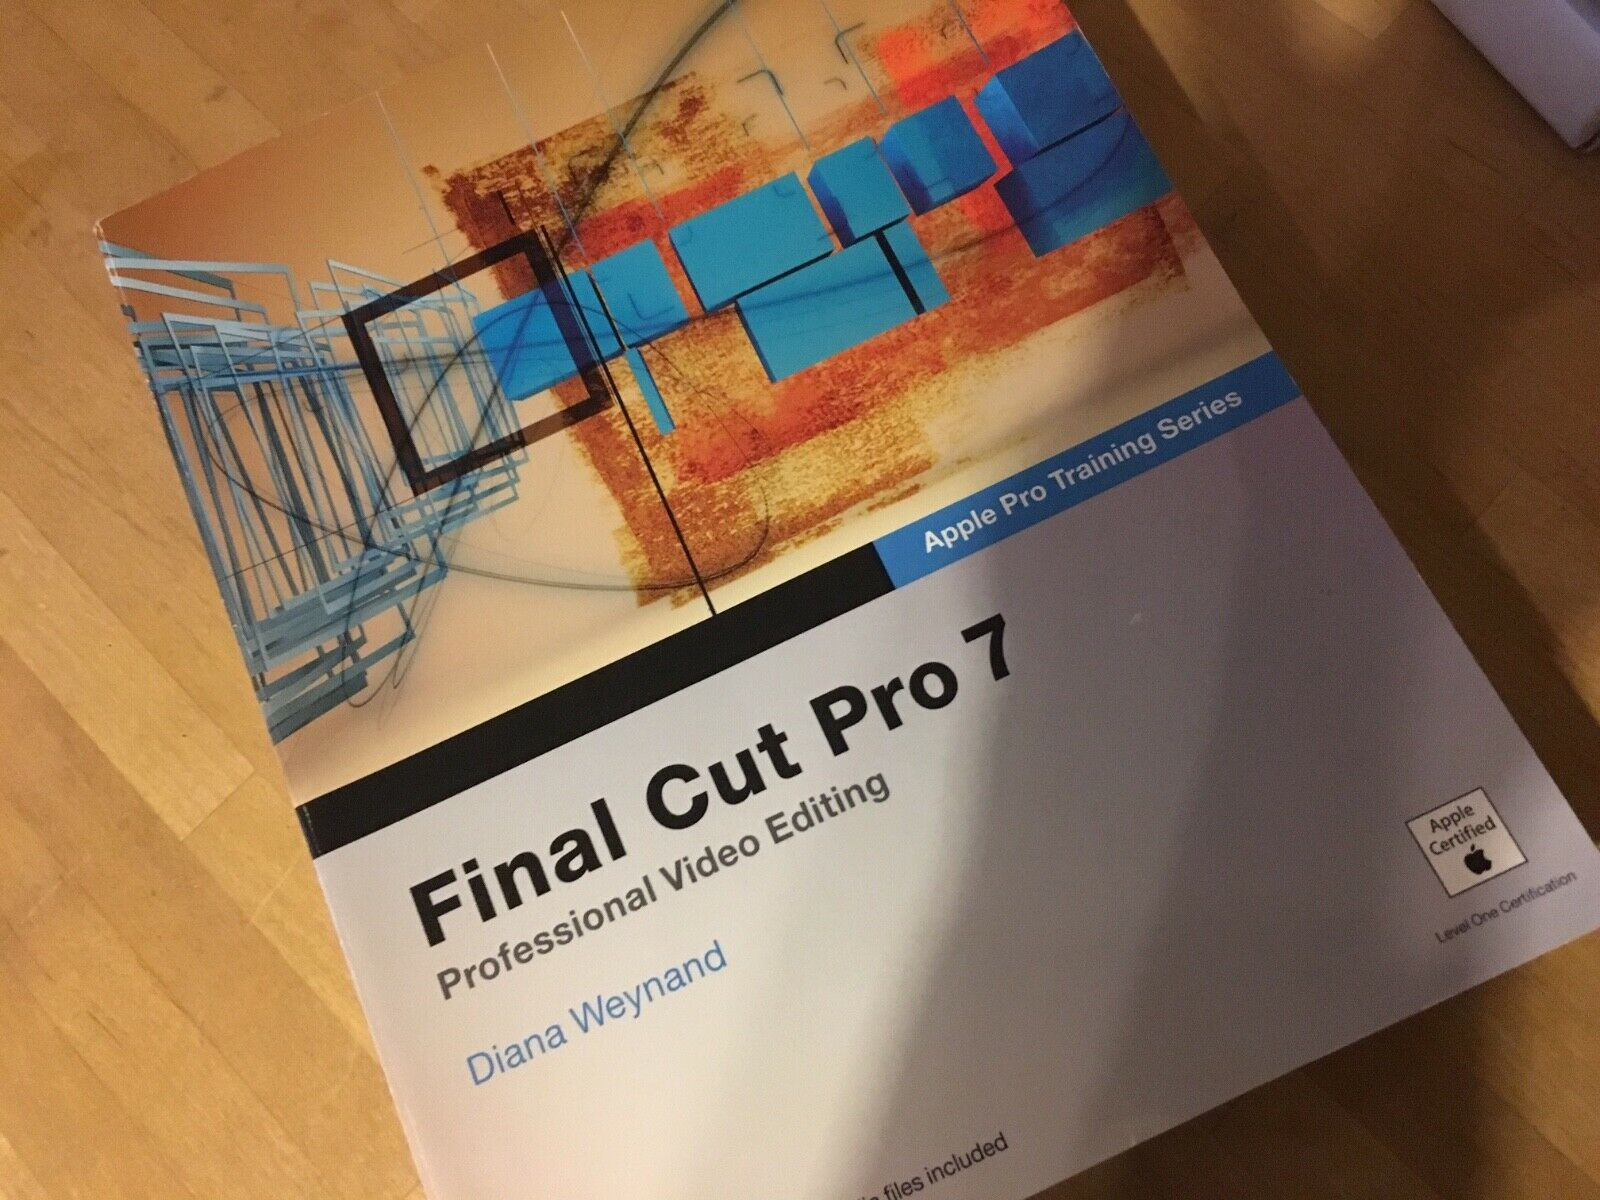 Apple Pro Training: Final Cut Pro 7 by Peachpit Press Staff and Diana  Weynand (2009, Paperback / Mixed Media)